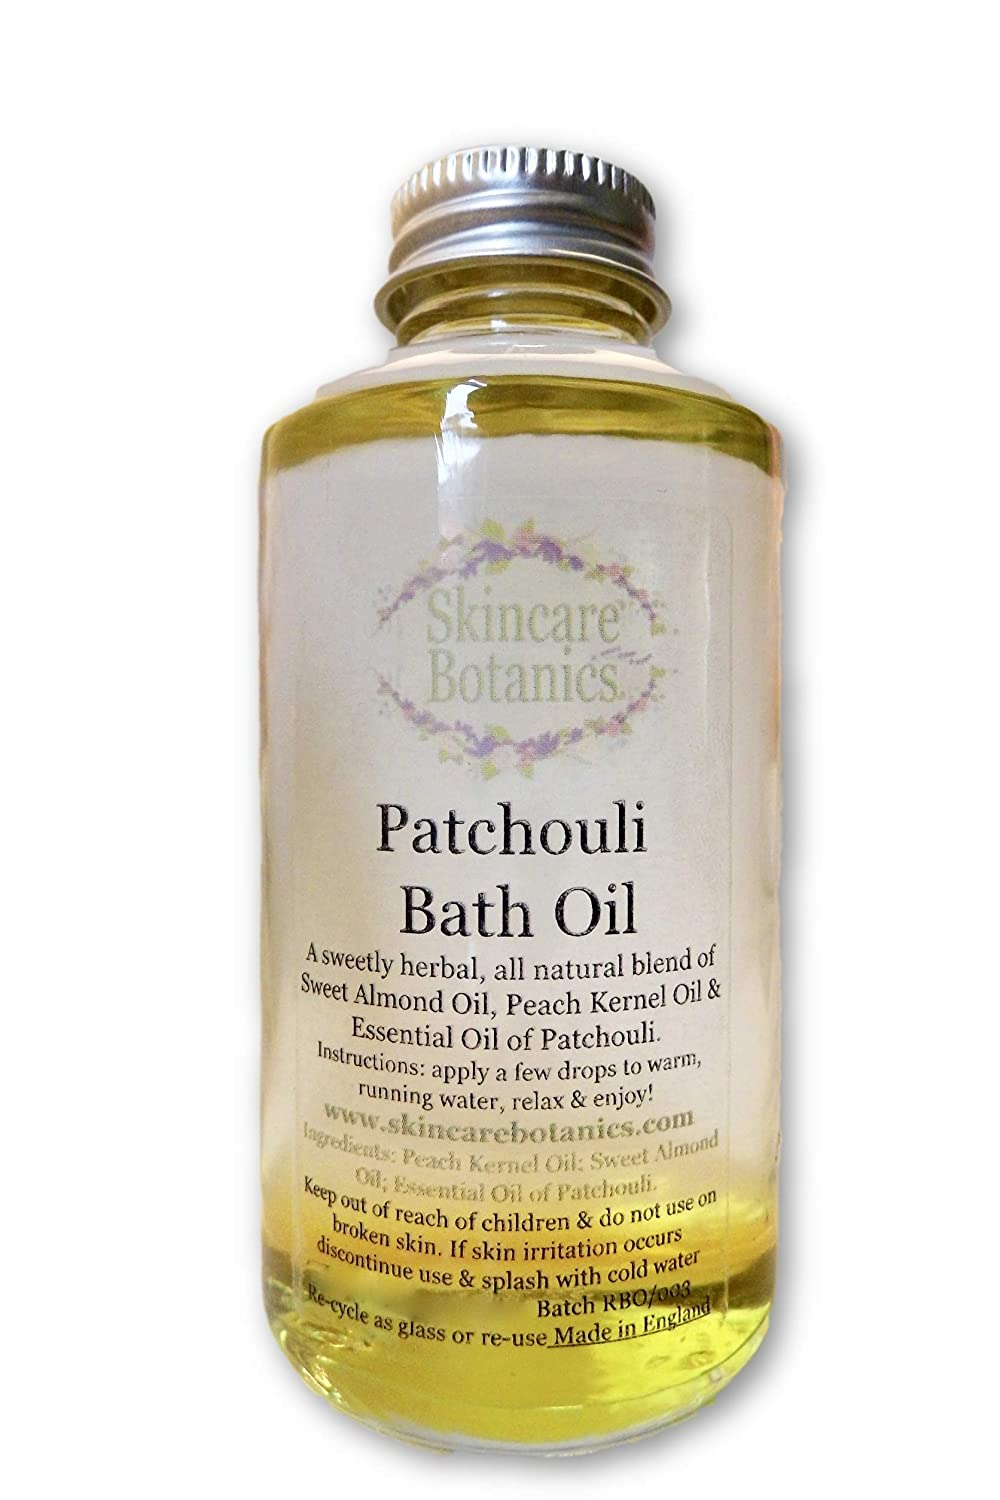 Aromatherapy Pure & Natural Patchouli Bath Oil | Luxurious Aromatherapy Bath Oil made with pure Essential Oil of Patchouli & Nourishing Skin Oils | Relax & Unwind in a Heavenly Aroma of Sweet & Herbal Patchouli | Envelops the body in uniqu